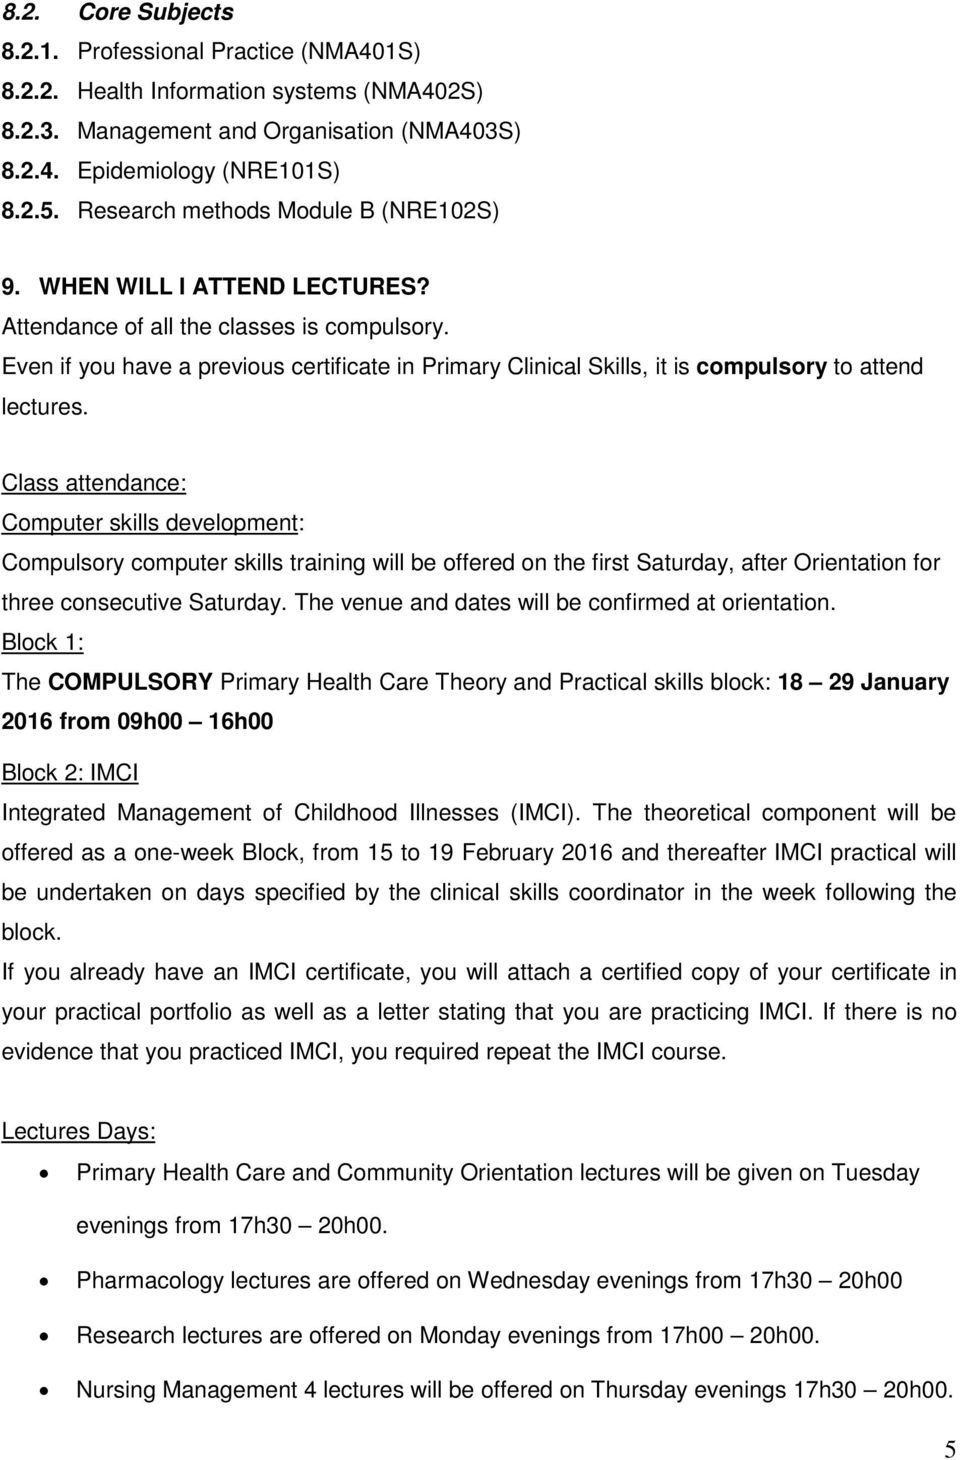 Even if you have a previous certificate in Primary Clinical Skills, it is compulsory to attend lectures.